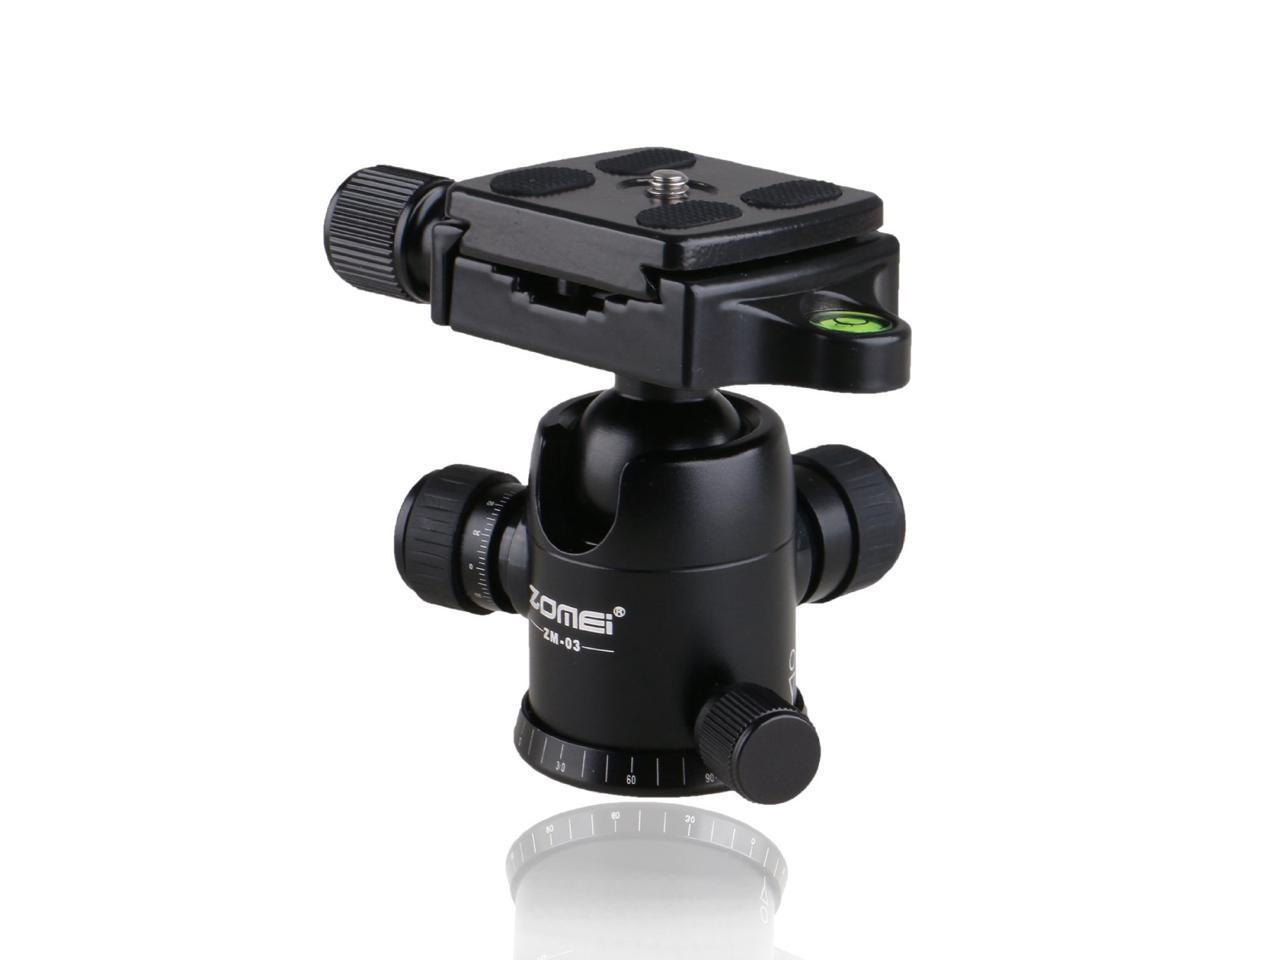 Camera USB Data Cable Protected Fastener Fixing Base For Tripod Ball Head